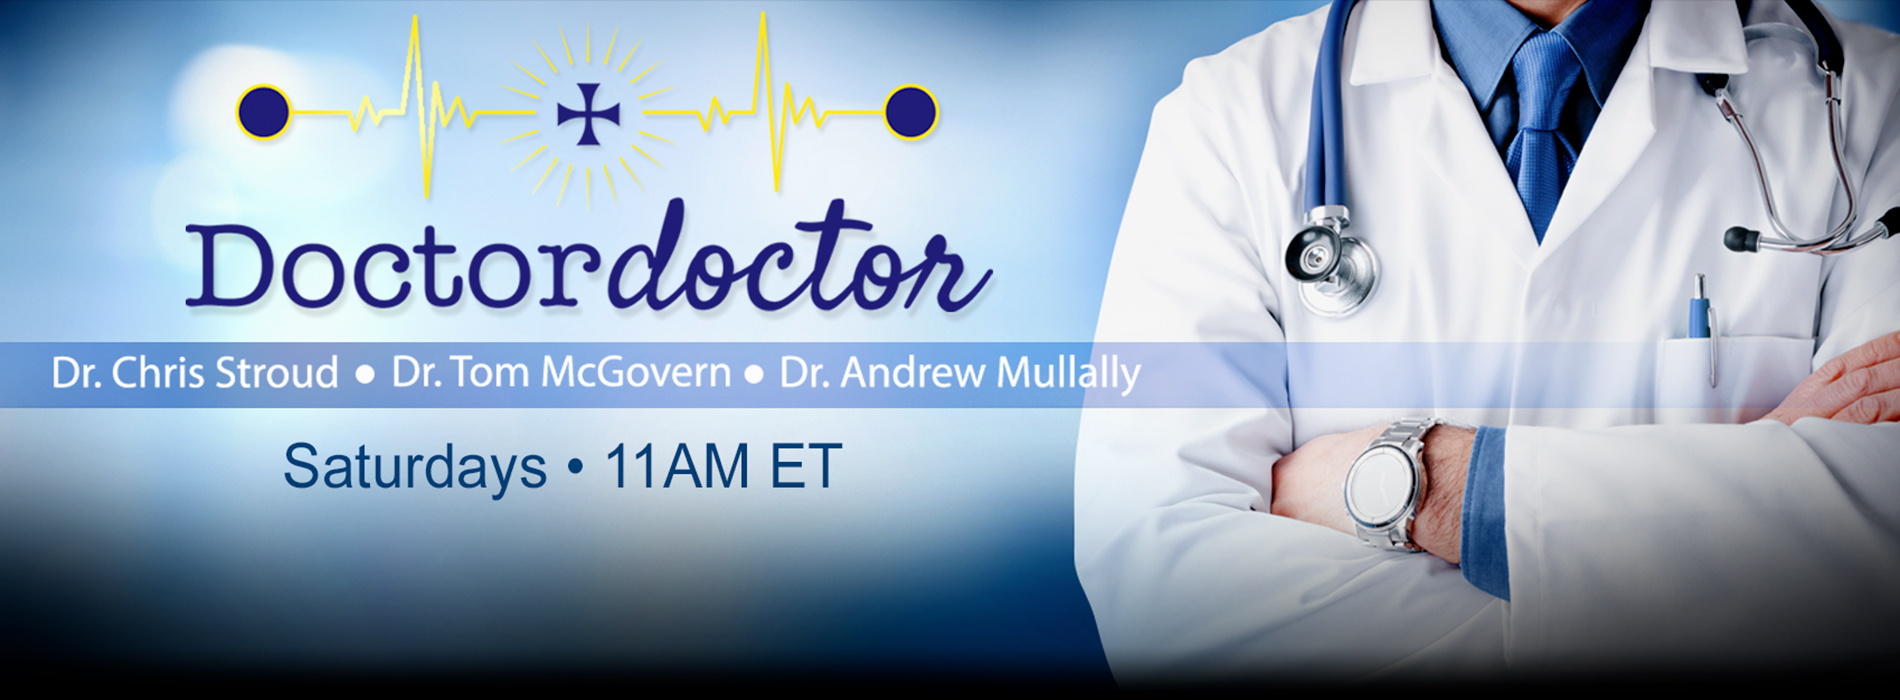 Doctor Doctor: Saturday 11AM ET